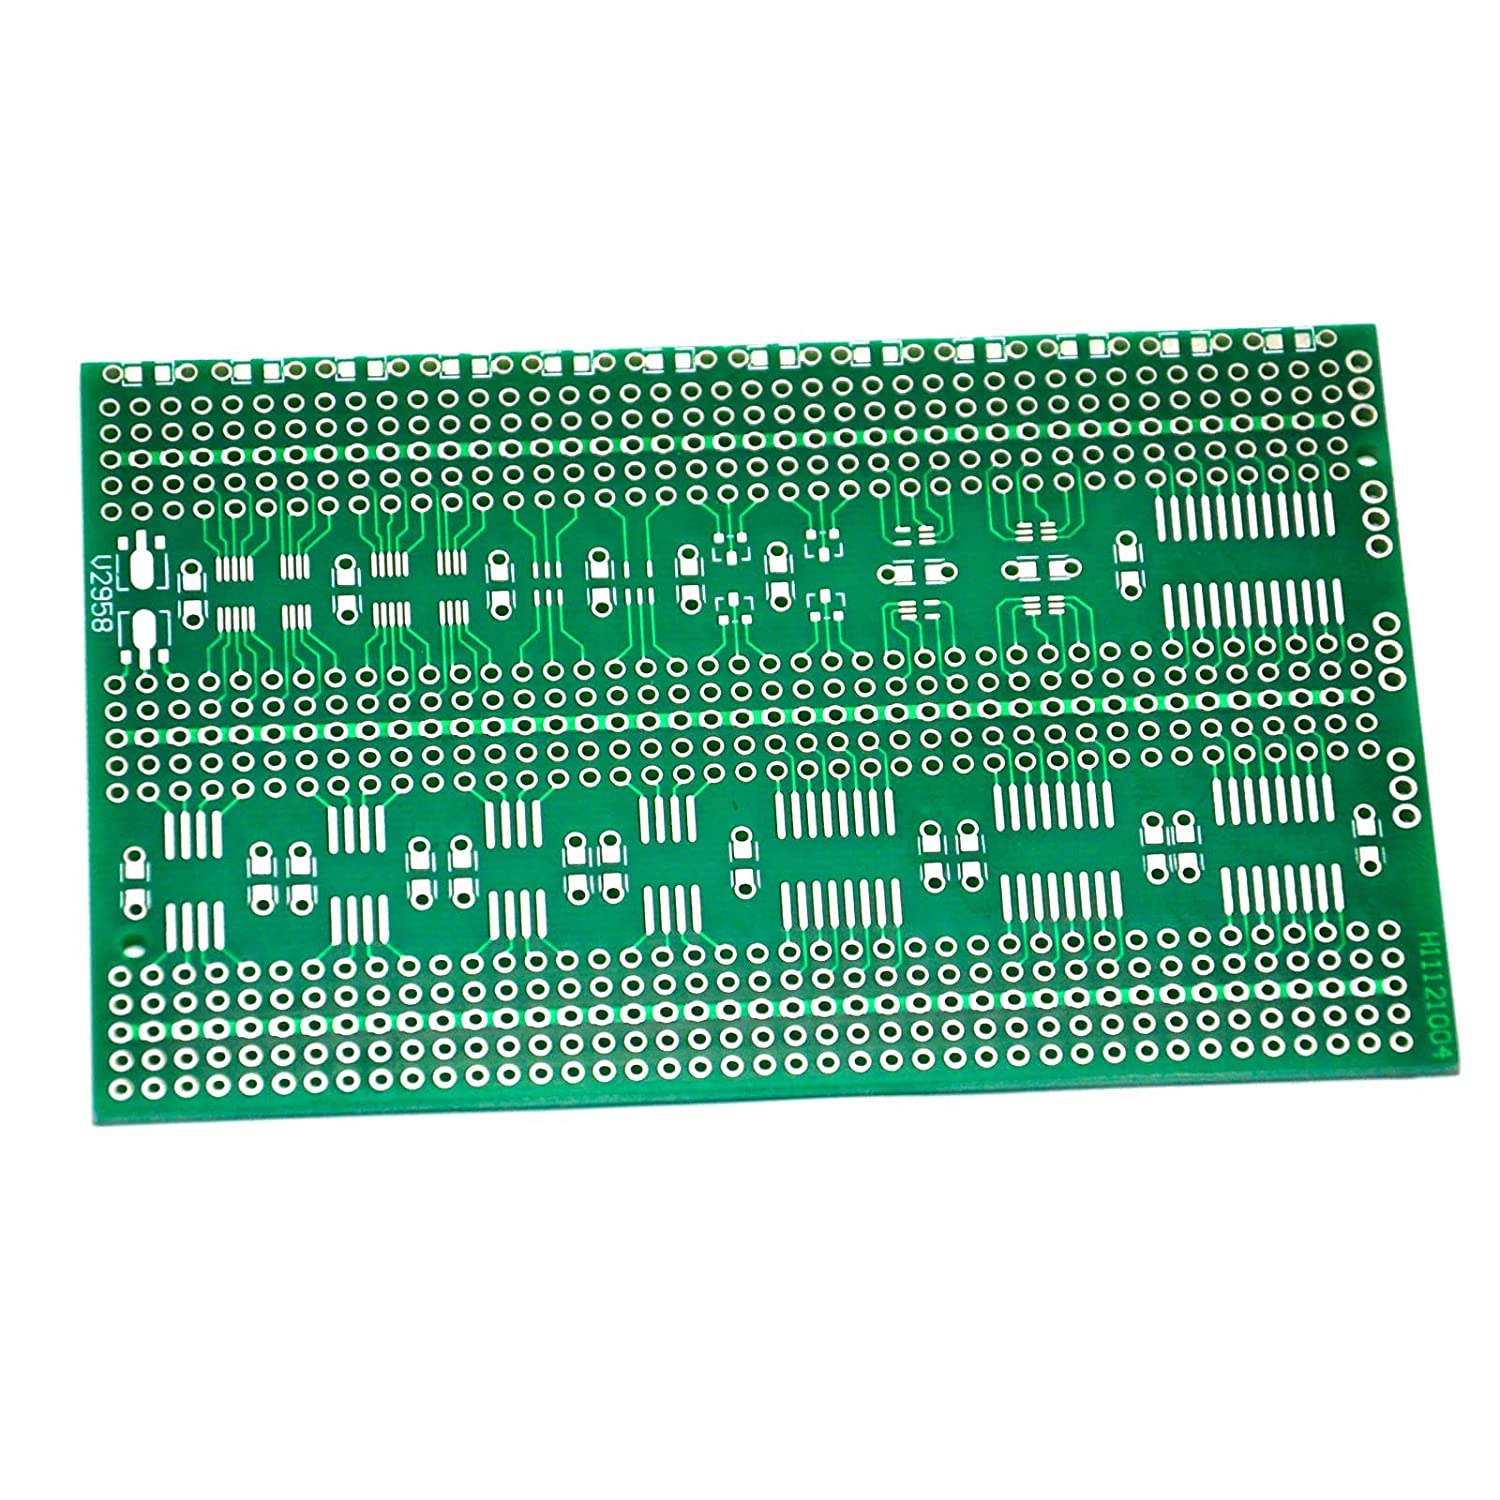 Gikfun Single Side Prototype Universal Smd Pcb Circuit Solderless Breadboard With 400 Tie Points And Matching Board For Arduino Ek1599 Computers Accessories